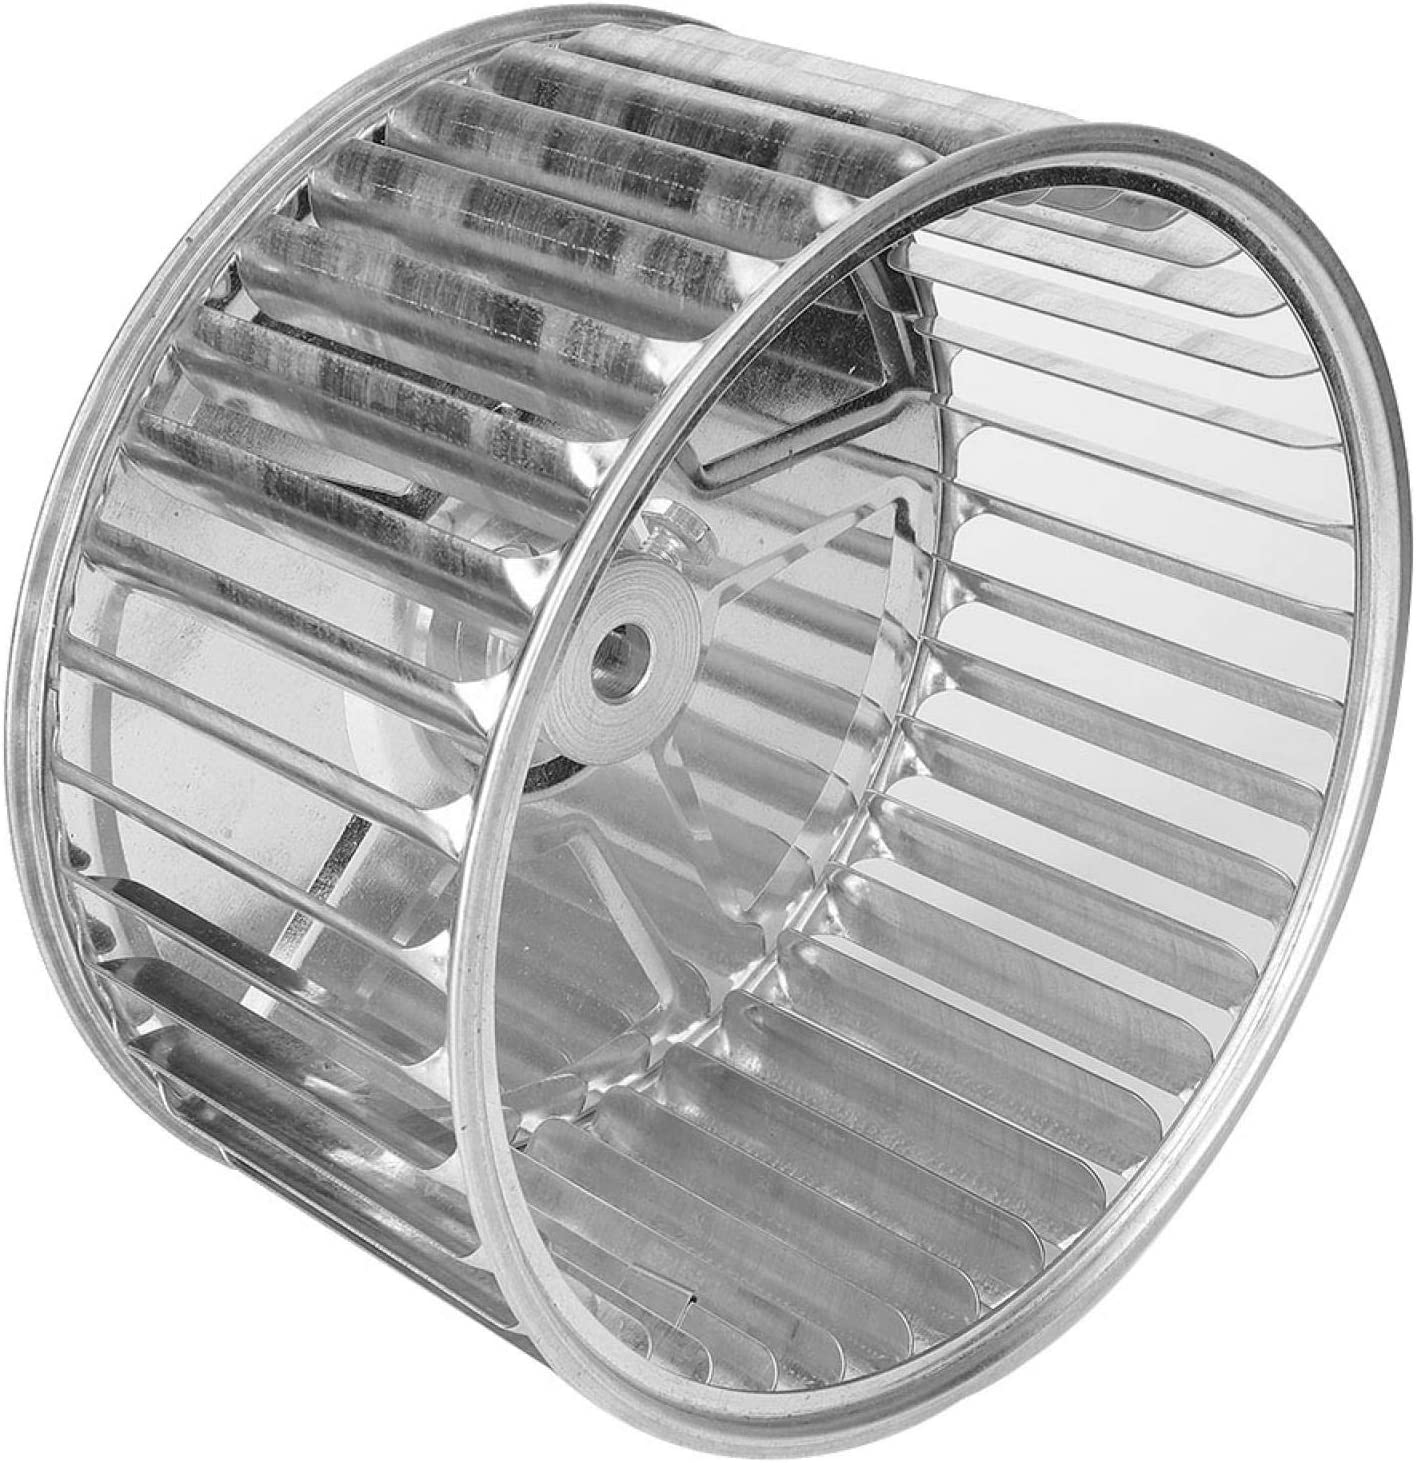 Dryer Memphis Mall Blower Wheel Durable Easy To Install Direc 37pcs Max 67% OFF Blades A